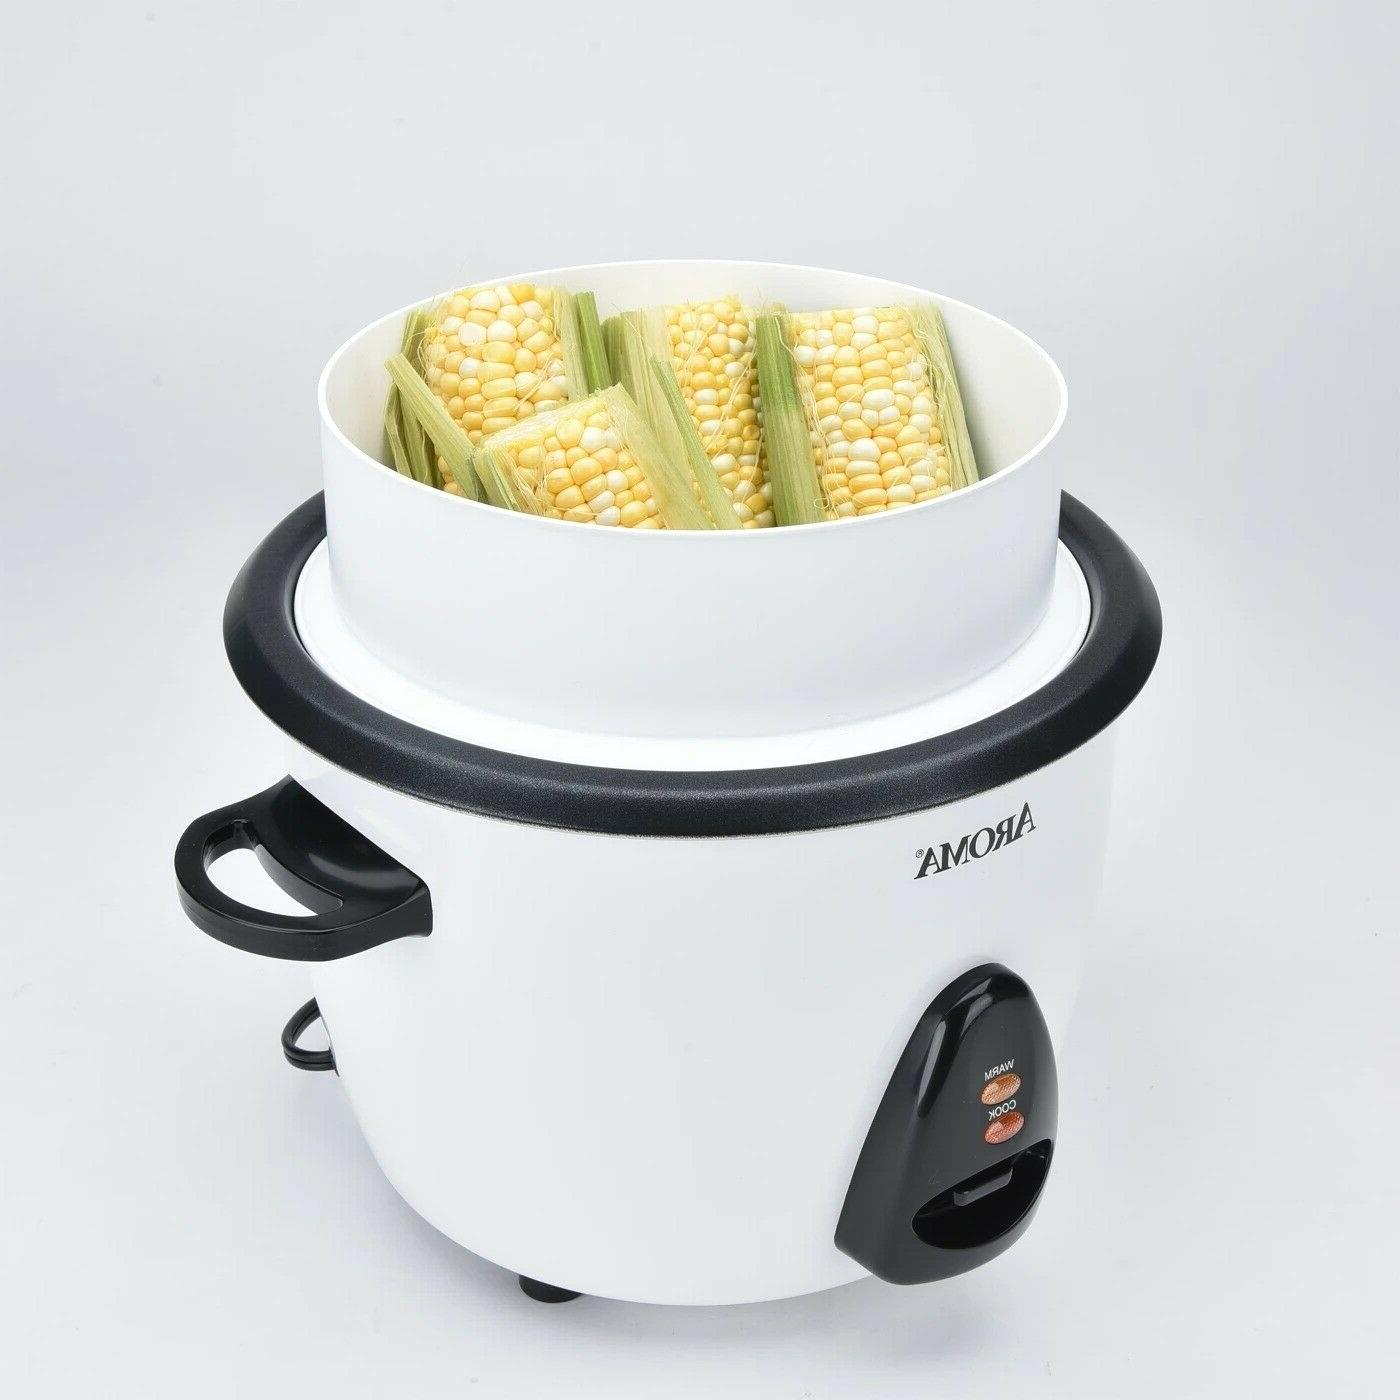 Aroma 20 Cup Rice Cooker with Tray